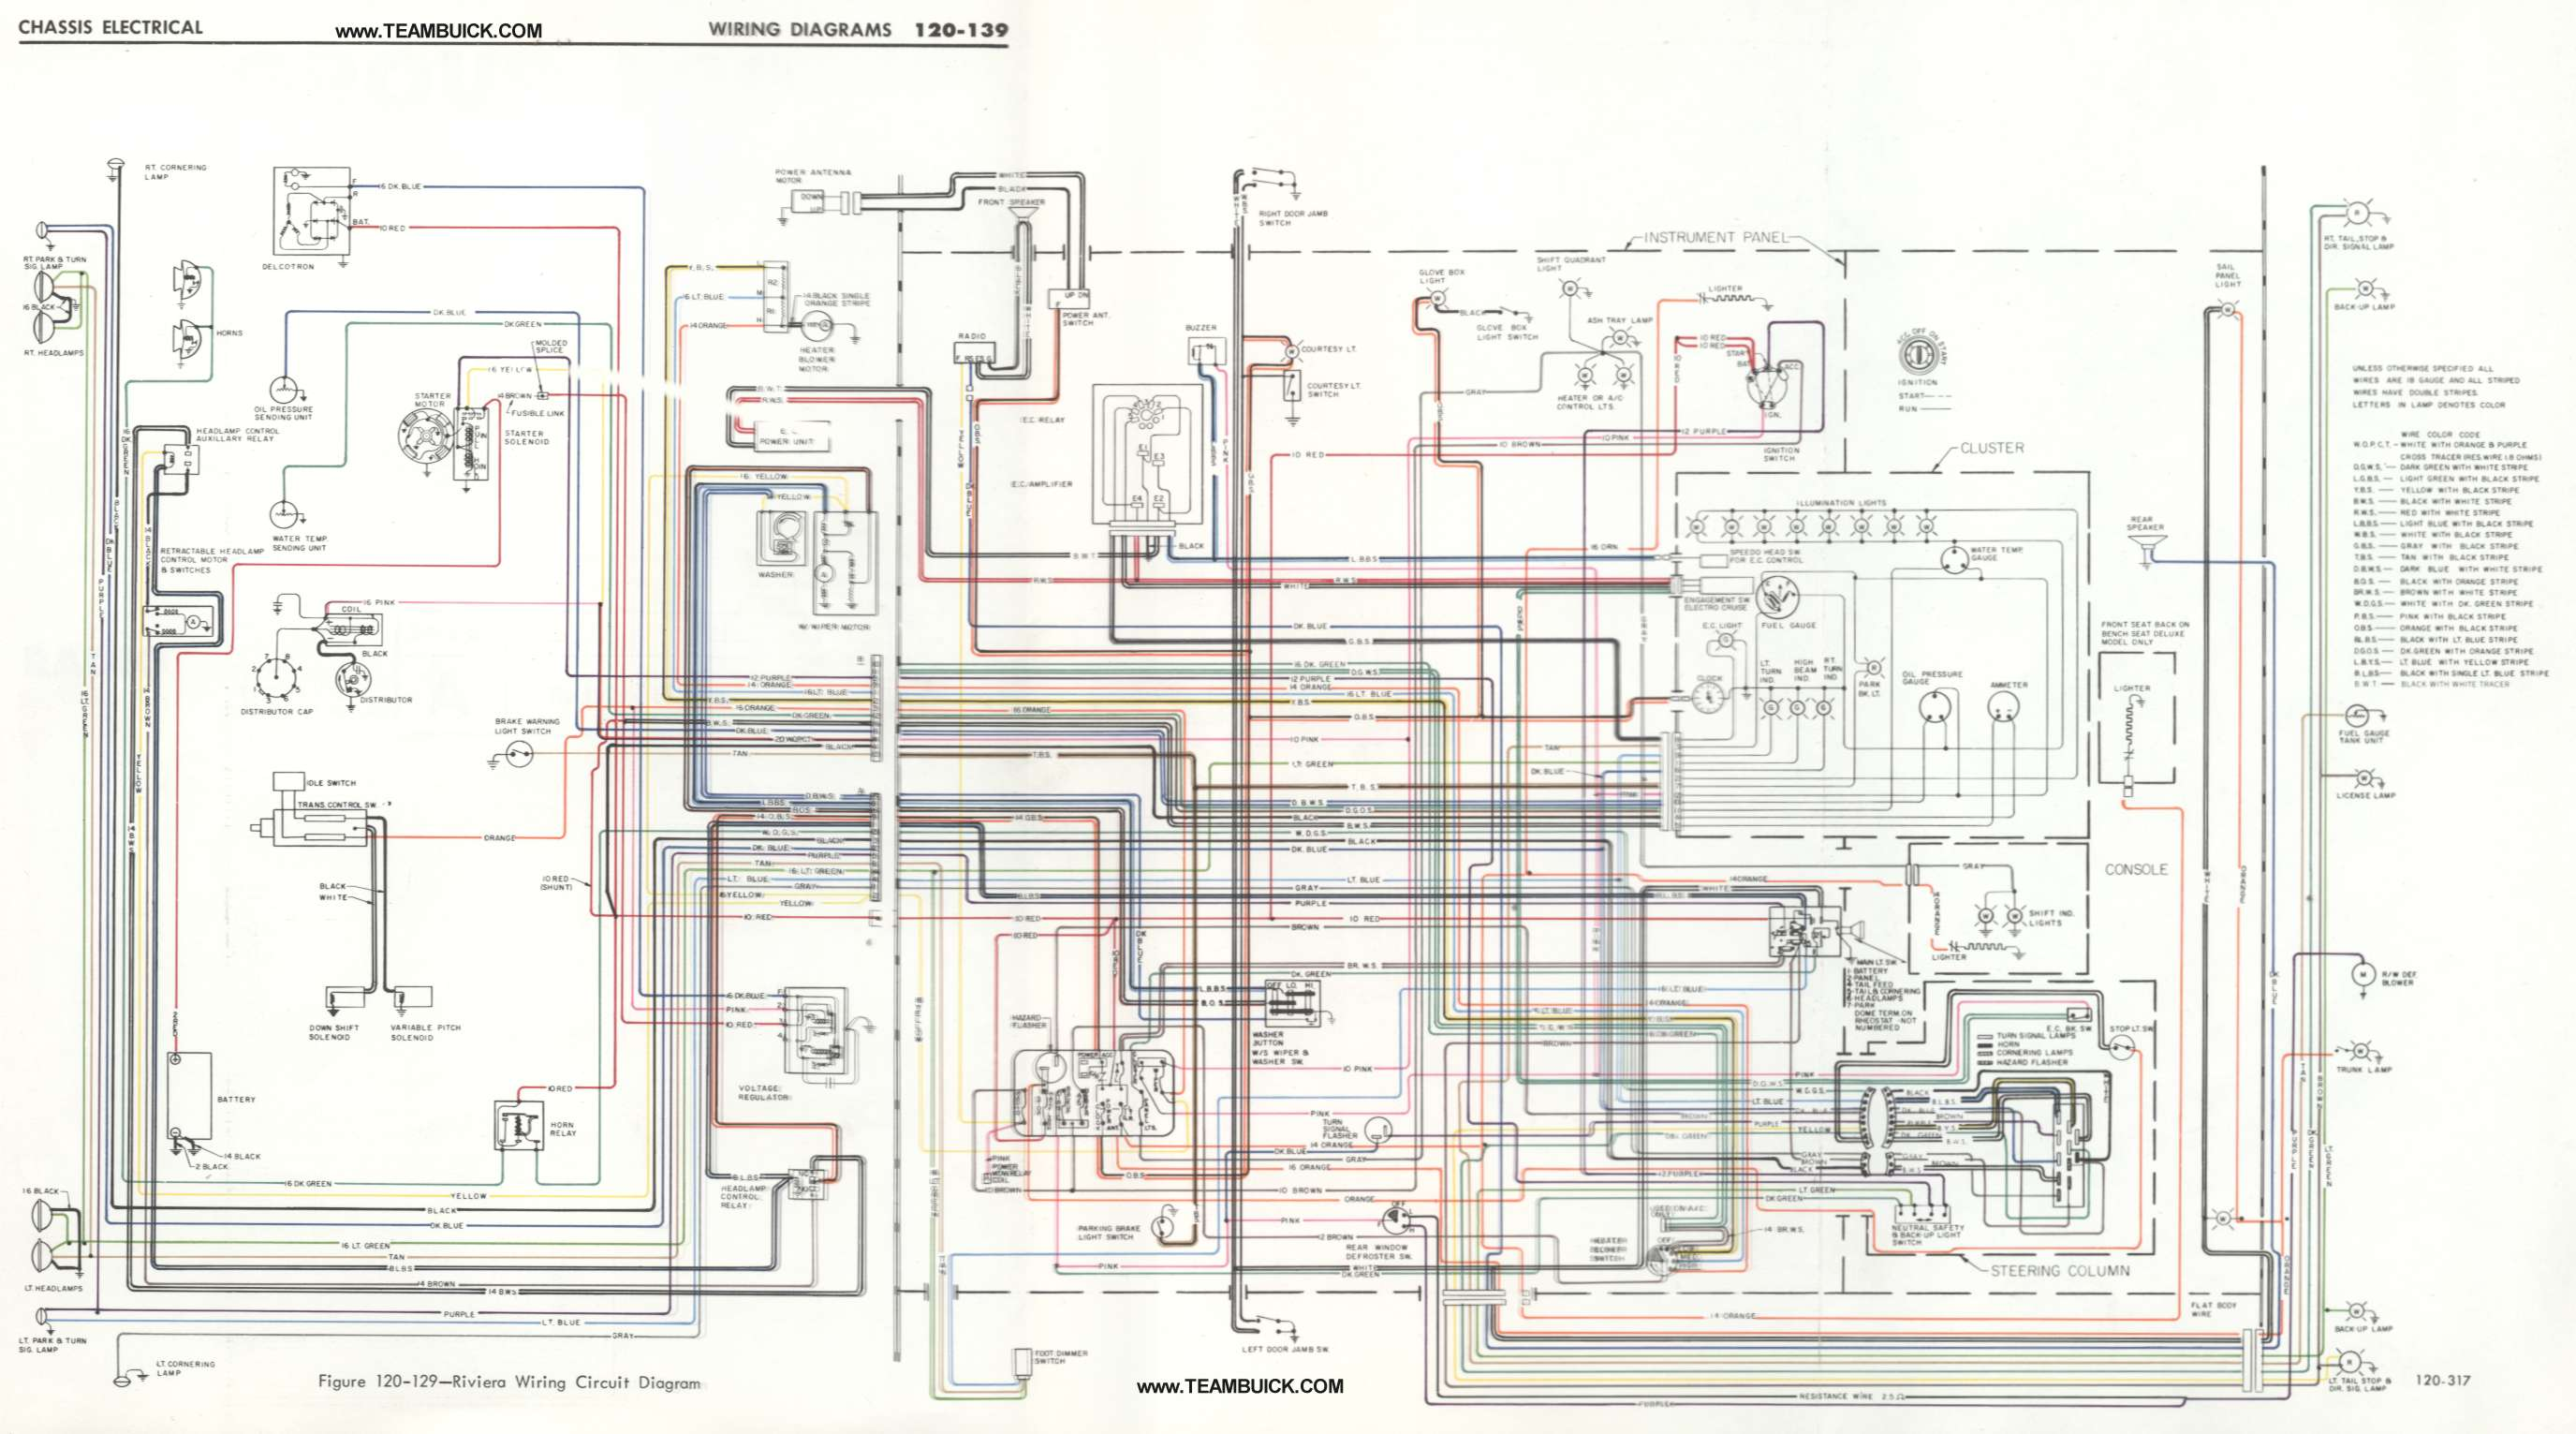 1958 buick wiring diagram wiring diagram mercedes radio wiring harness cadillac turn signal wiring diagram